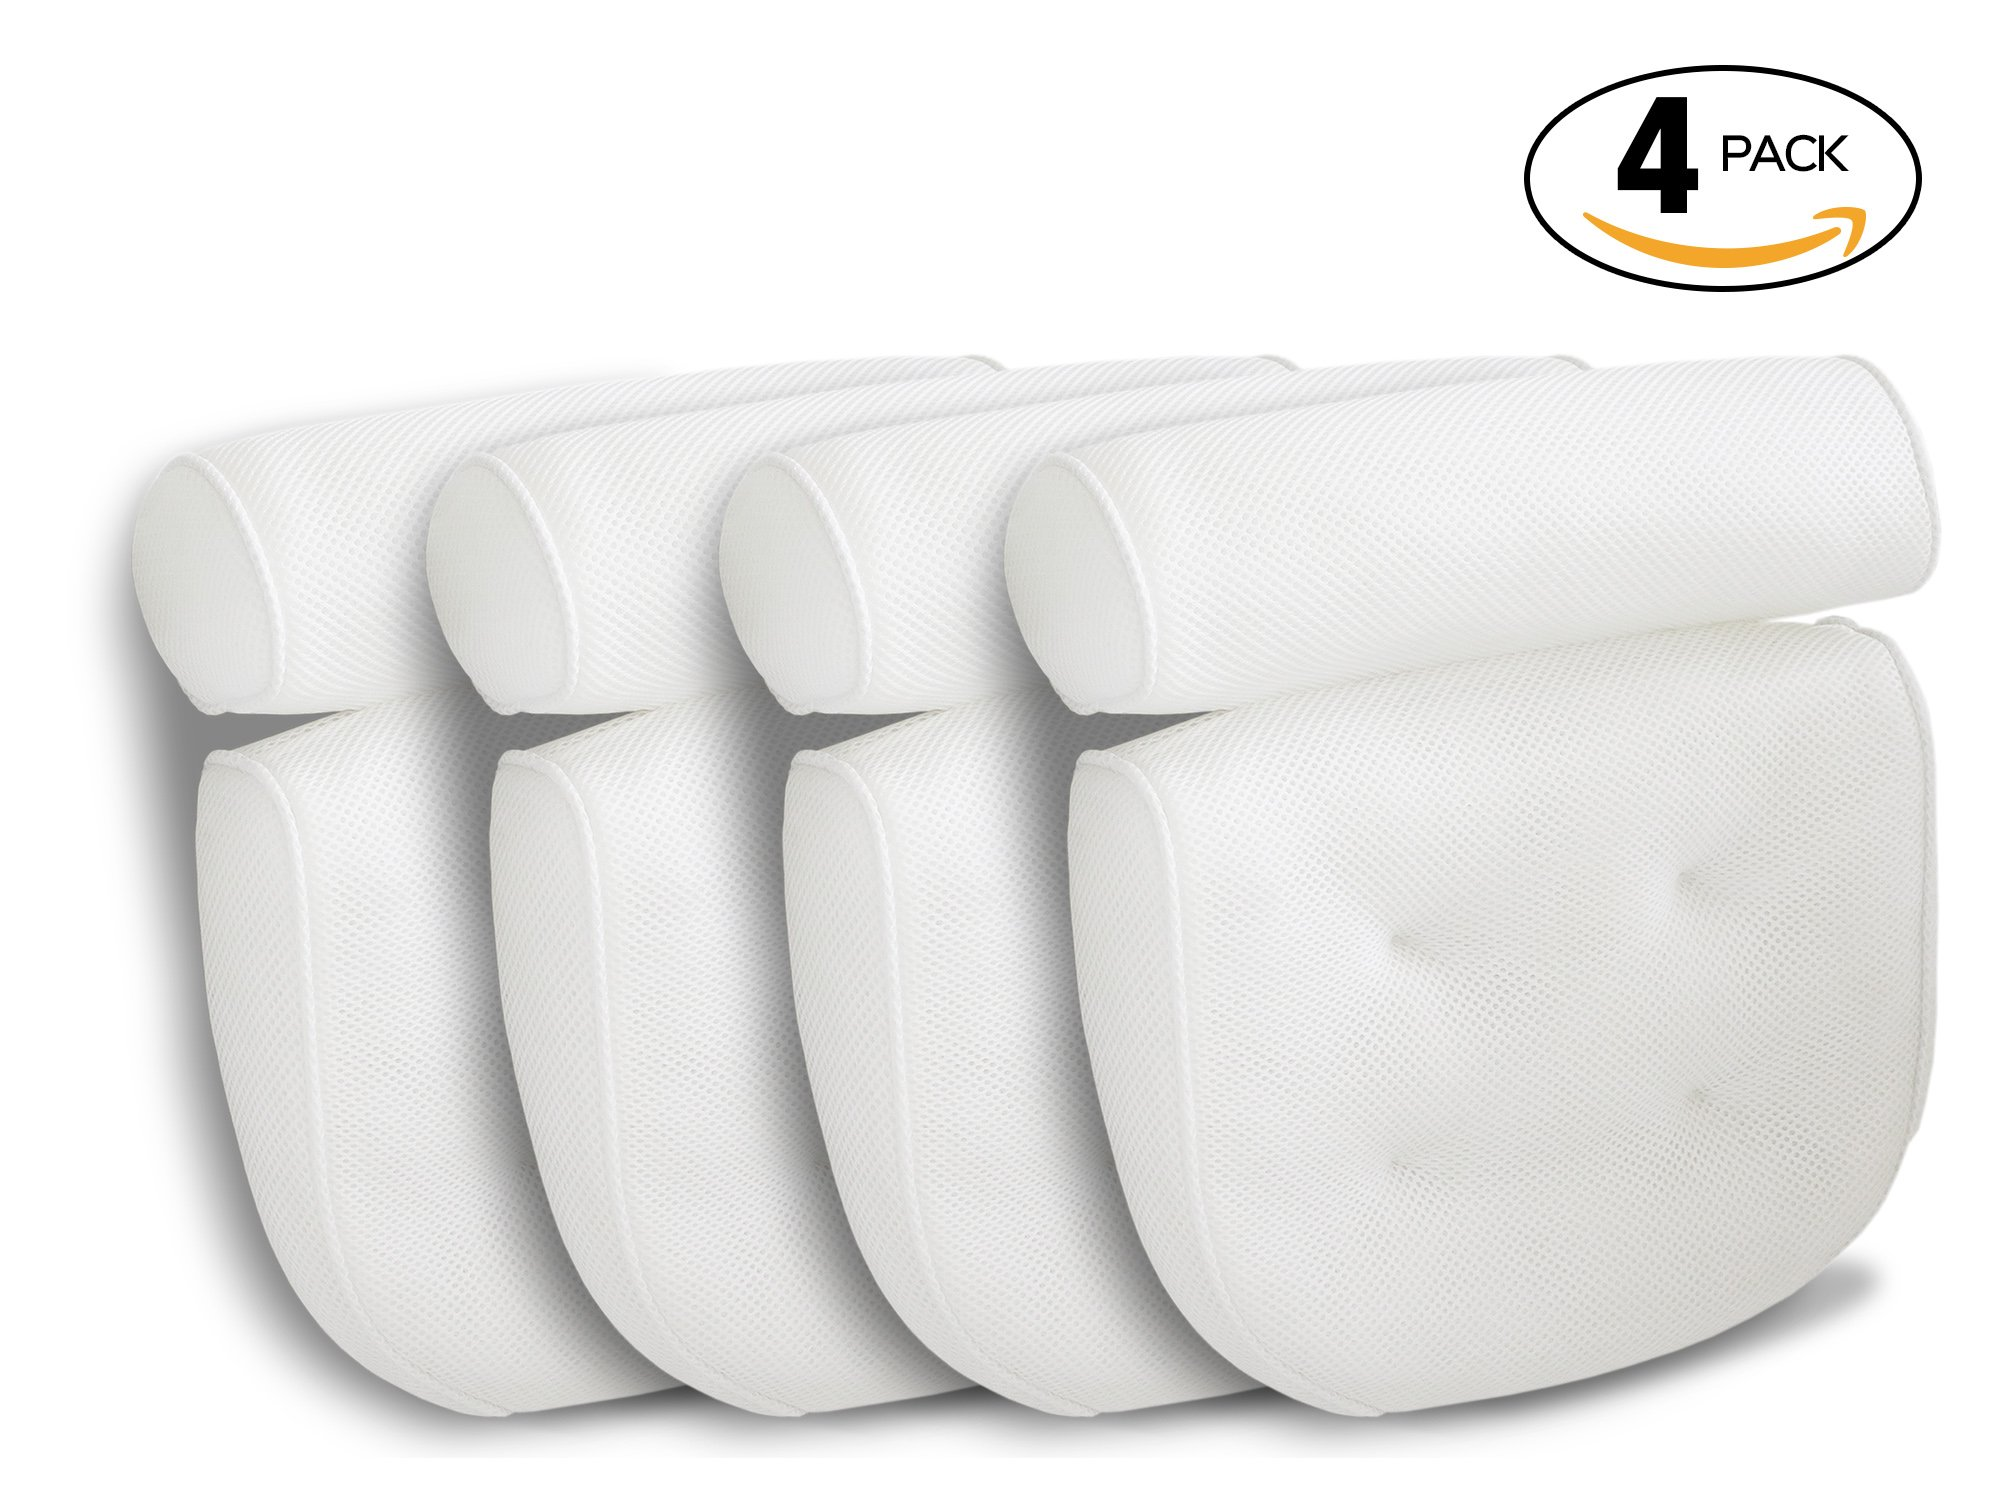 Luxury Spa Bath Pillows 4 Pack with Head, Neck, Shoulder and Back Support. Non-Slip, Extra Thick, Soft and Large 14x13in for the ultimate relaxation experience. Fits any tub. by Viventive